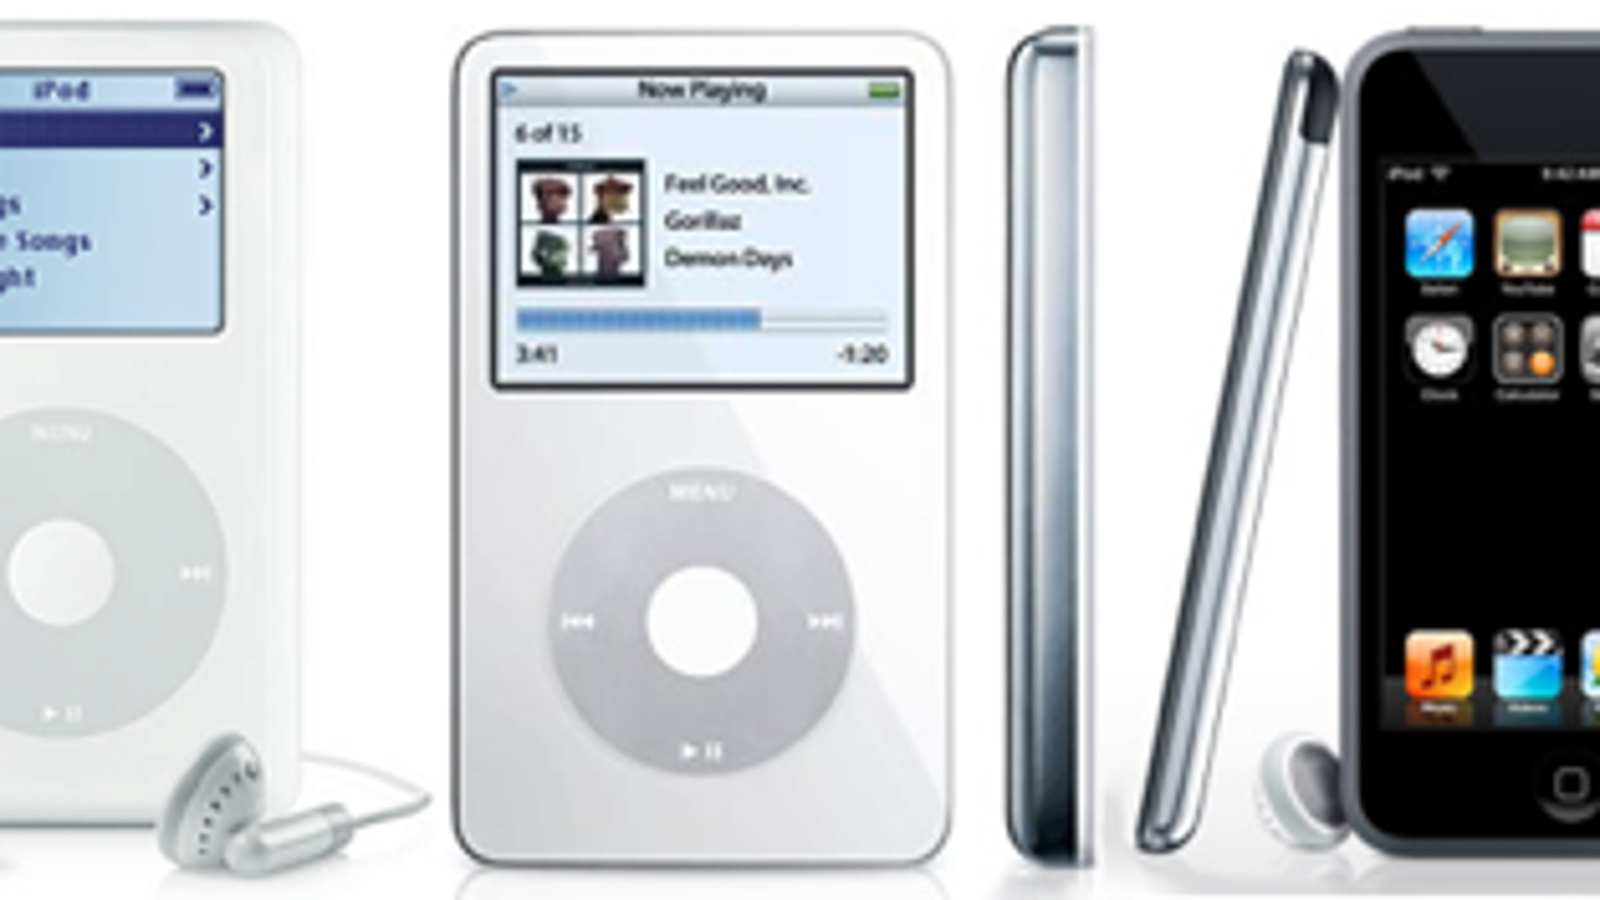 The 20 Best iPod Utilities